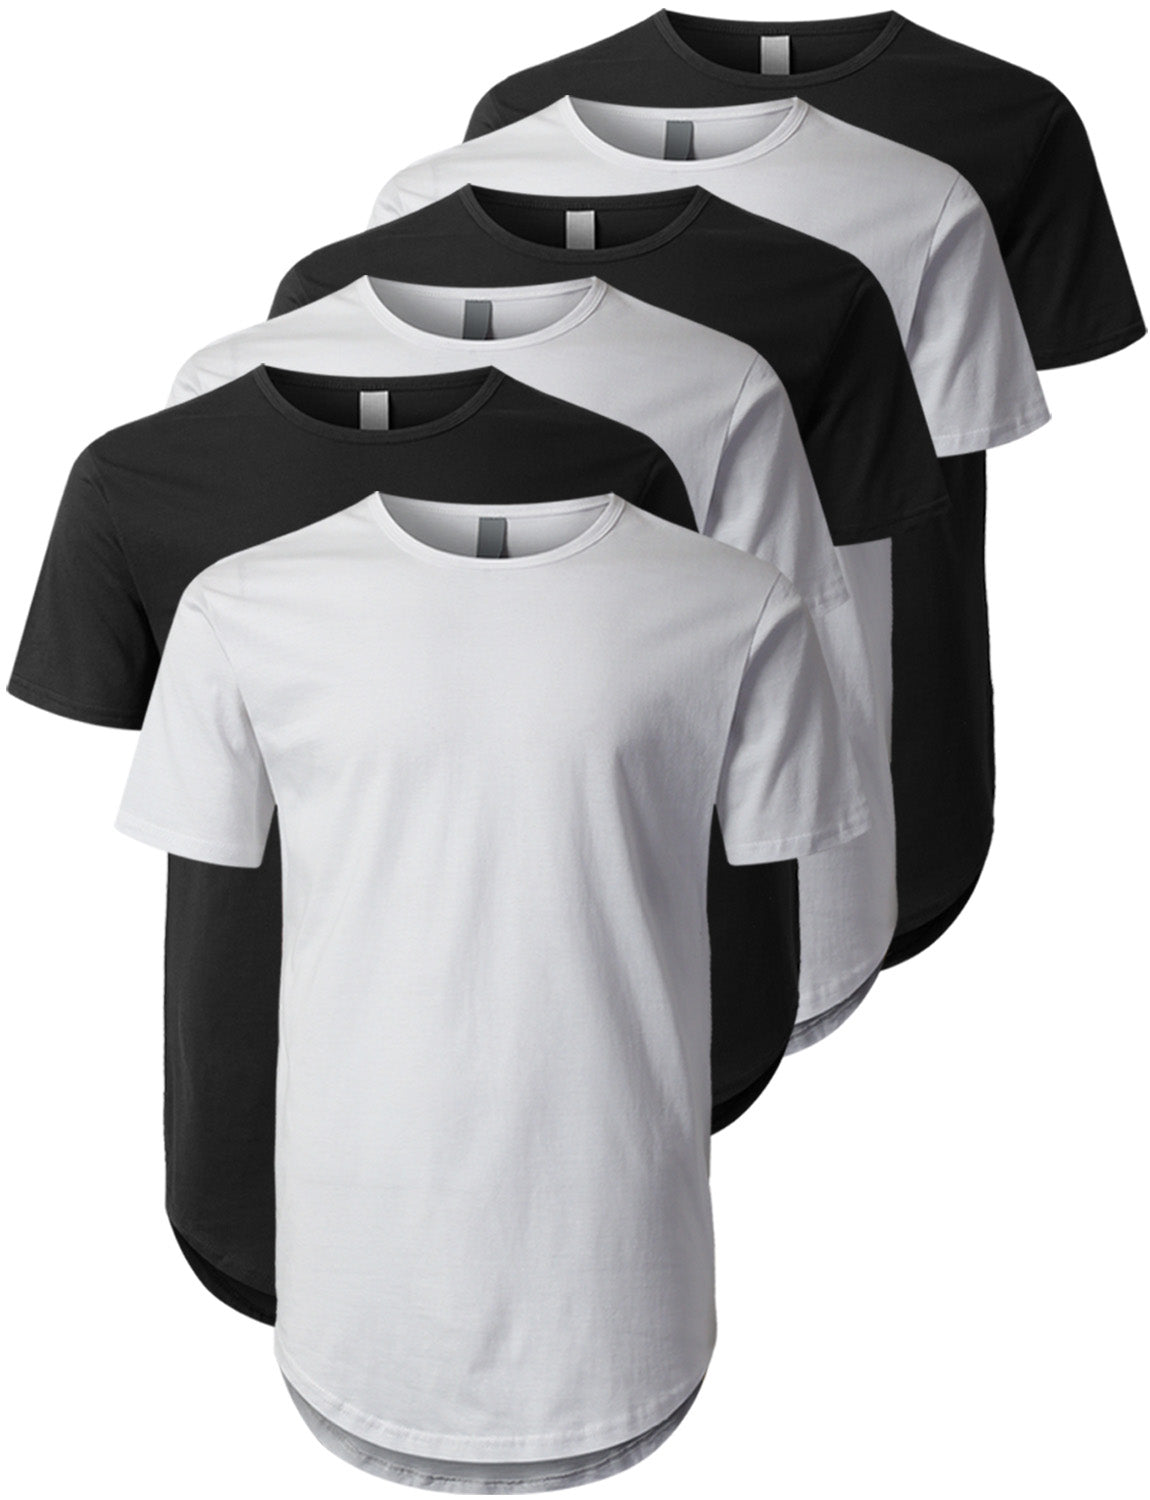 MIX Crewneck Basic T-Shirts 6 Pack Black/White